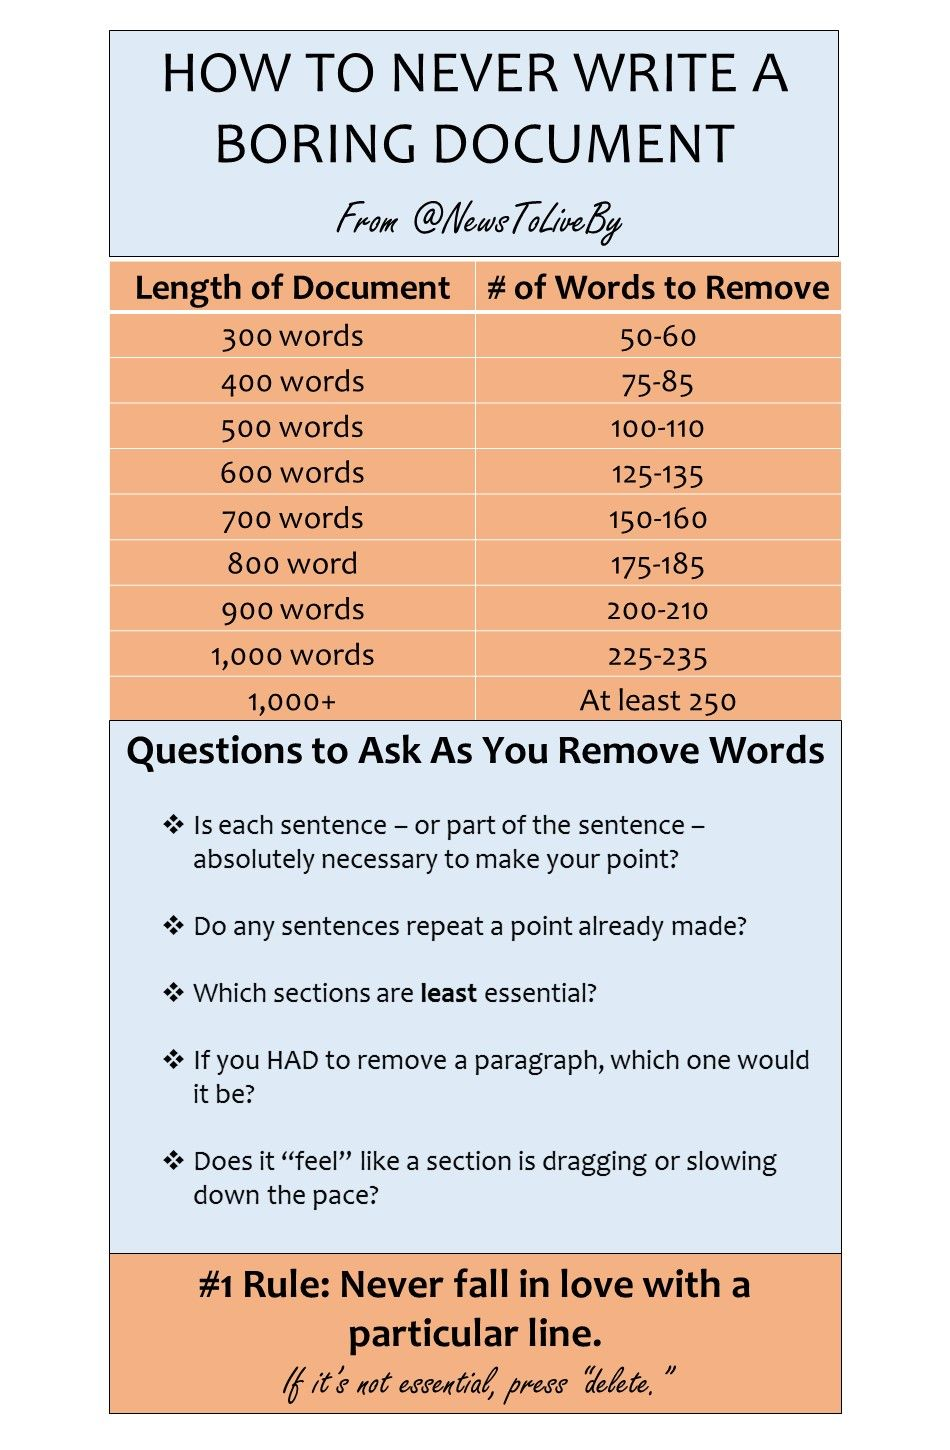 Easy Persuasive Essay Topics For High School This Chart Will Make Sure You Never Write A Boring Document Persuasive  Essays Essay Writing Thesis For An Analysis Essay also Essay On Healthy Foods This Chart Will Make Sure You Never Write A Boring Document  Food  High School Narrative Essay